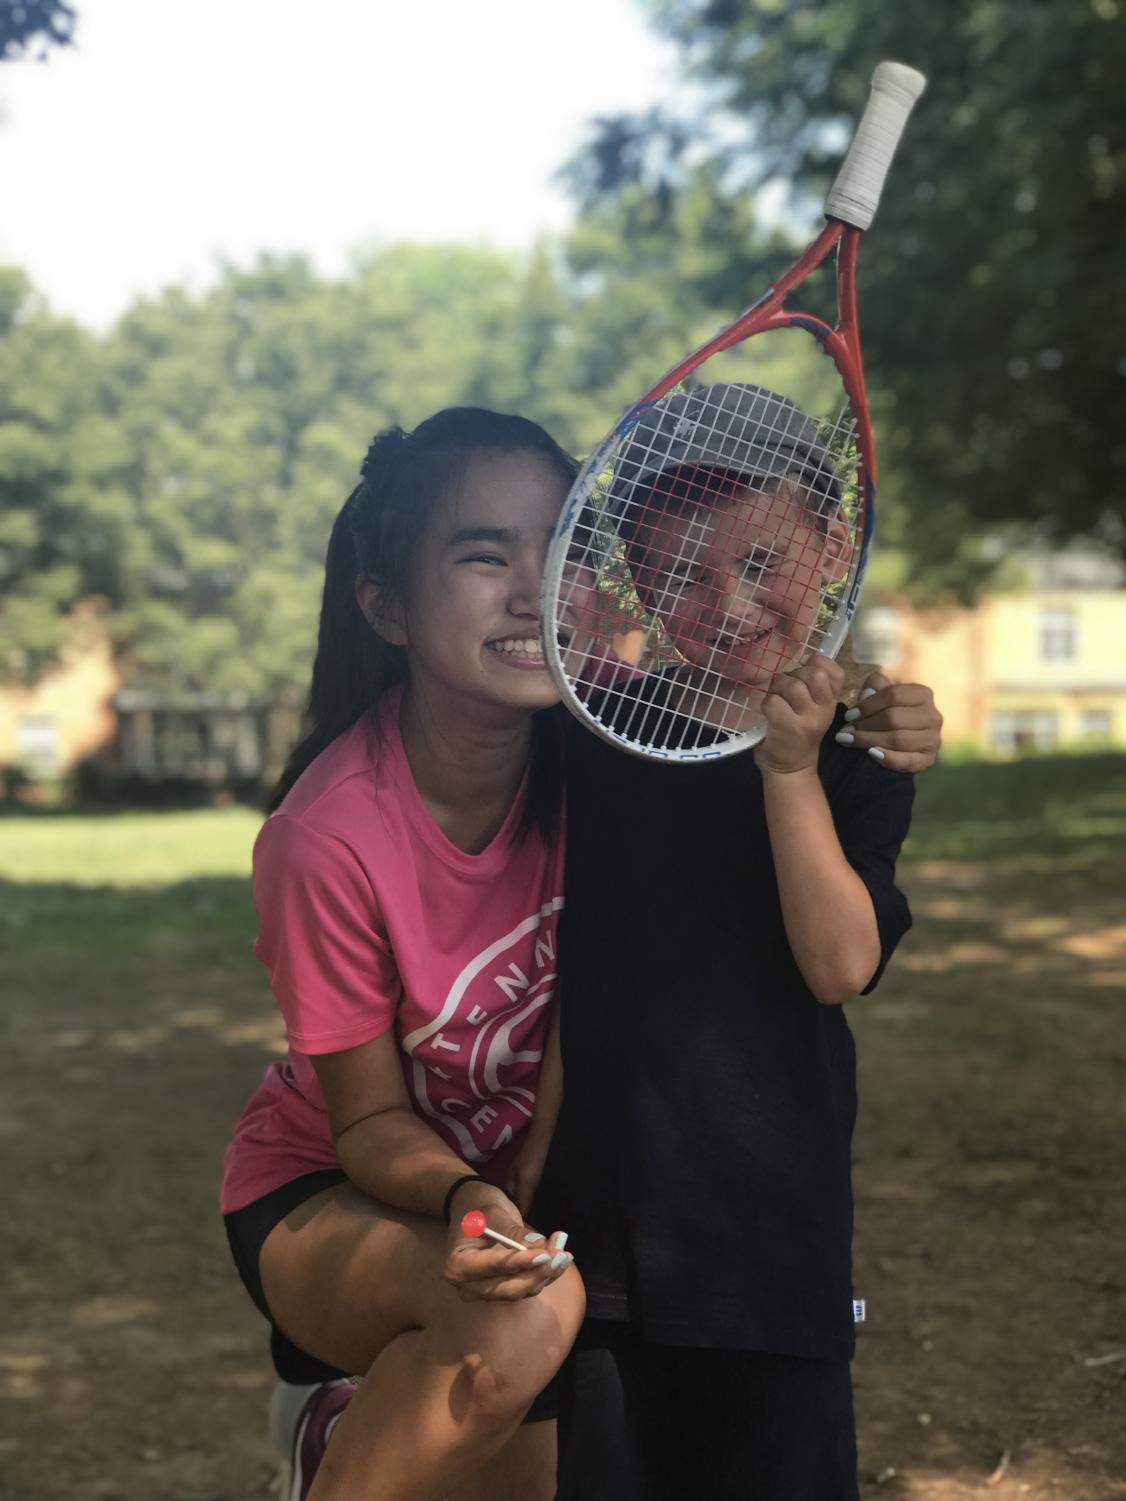 Online+Copy+Editor+Hirari+Sato+smiles+with+four+year+old+Richard+Stark+as+he+covers+his+face+with+his+baby+tennis+racket+at+the+Landon+Tennis+camp.+Sato+coached+three+to+five+year+olds+the+basics+of+tennis+such+as+forehands%2C+backhands+and+volleys+for+nine+weeks.